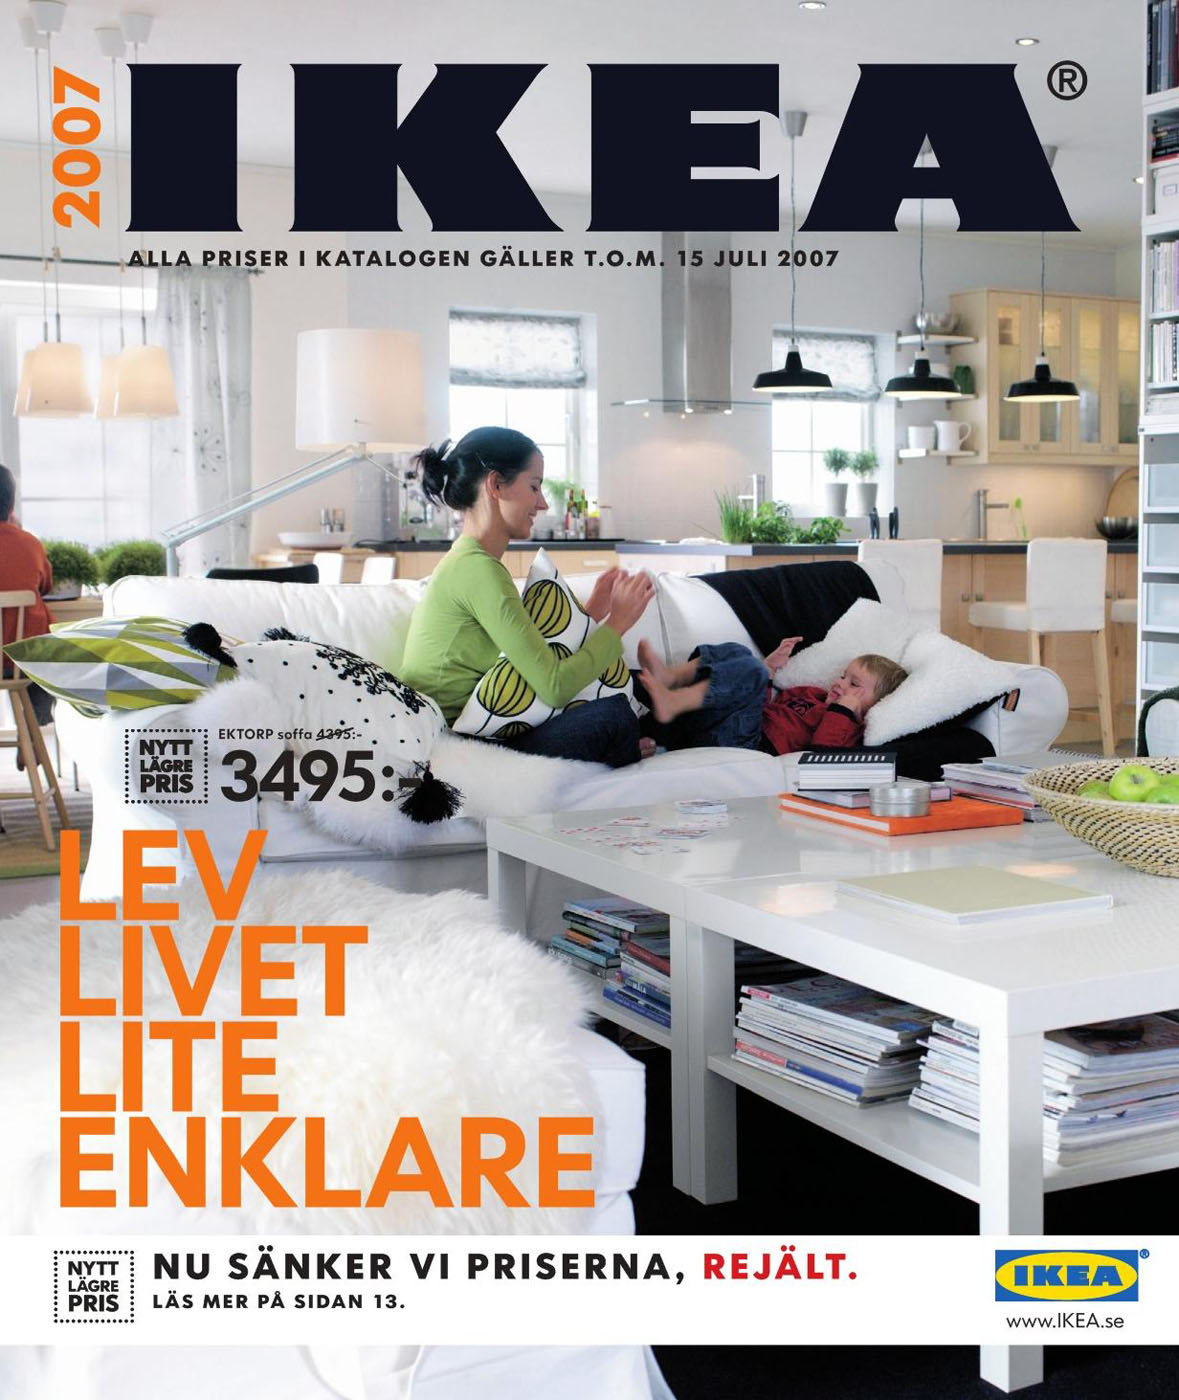 ikea 2007 catalog. Black Bedroom Furniture Sets. Home Design Ideas